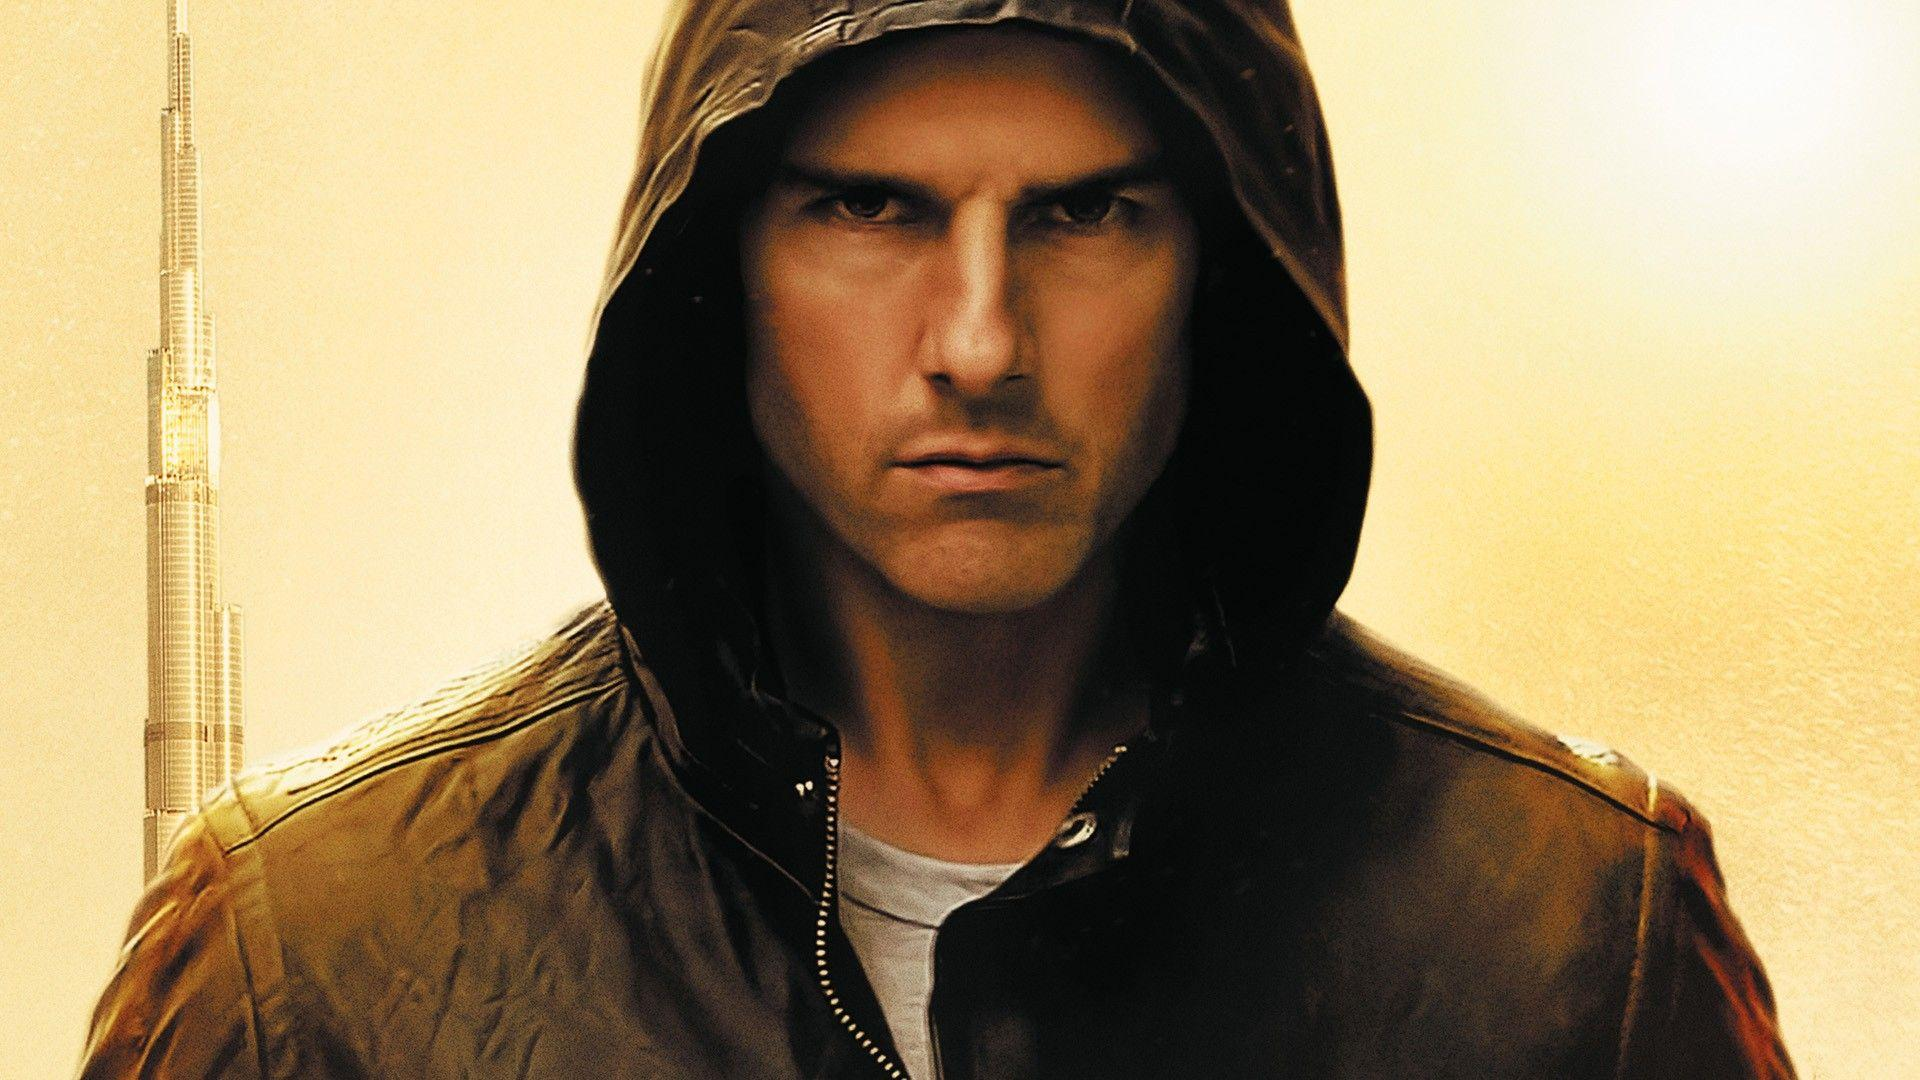 tom cruise wallpapers Archives - HD Images New